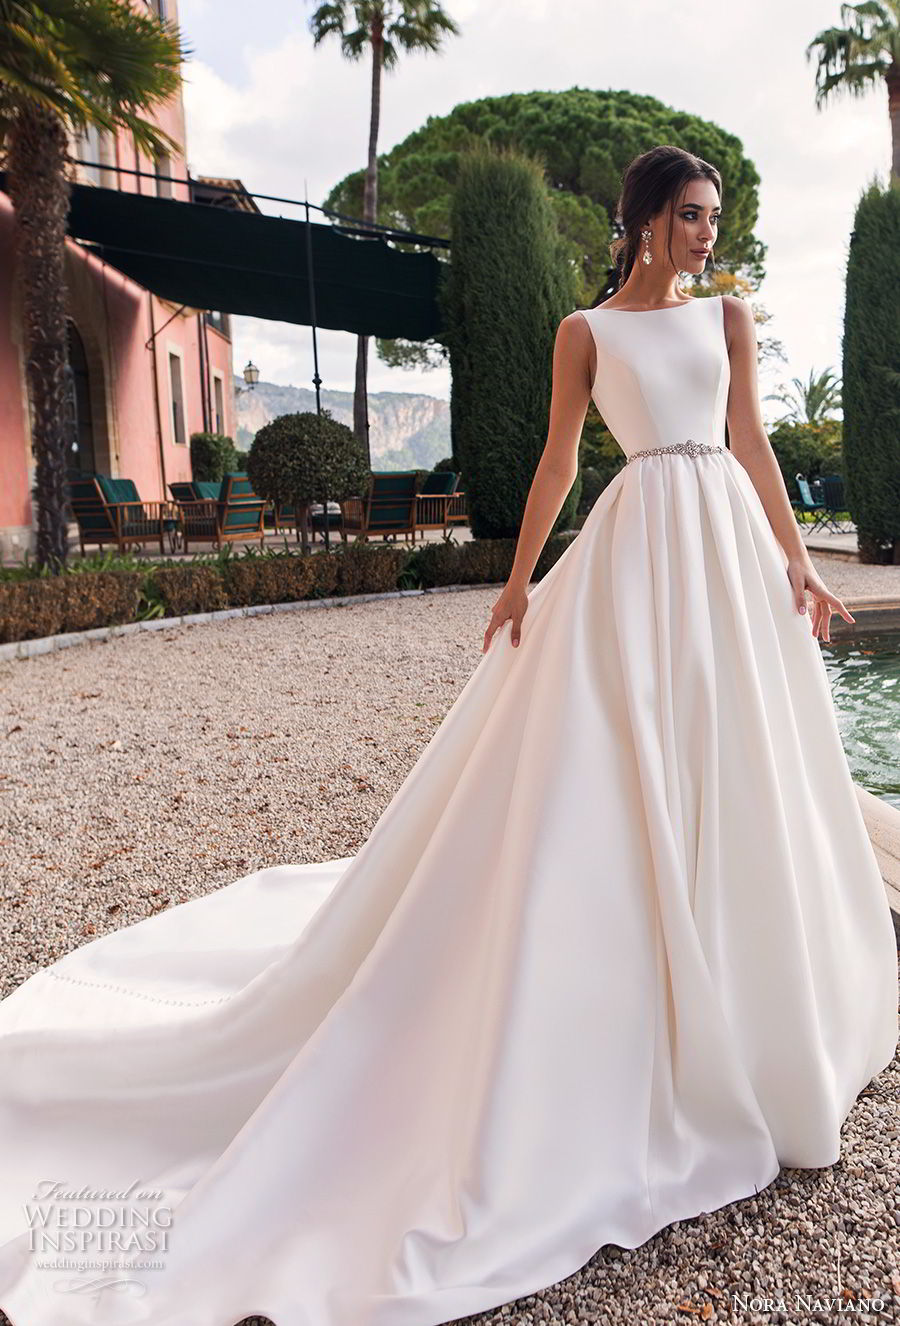 nora naviano 2019 bridal sleeveless bateau neckline simple clean minimalist elegant a  line wedding dress open scoop back royal train (16) mv